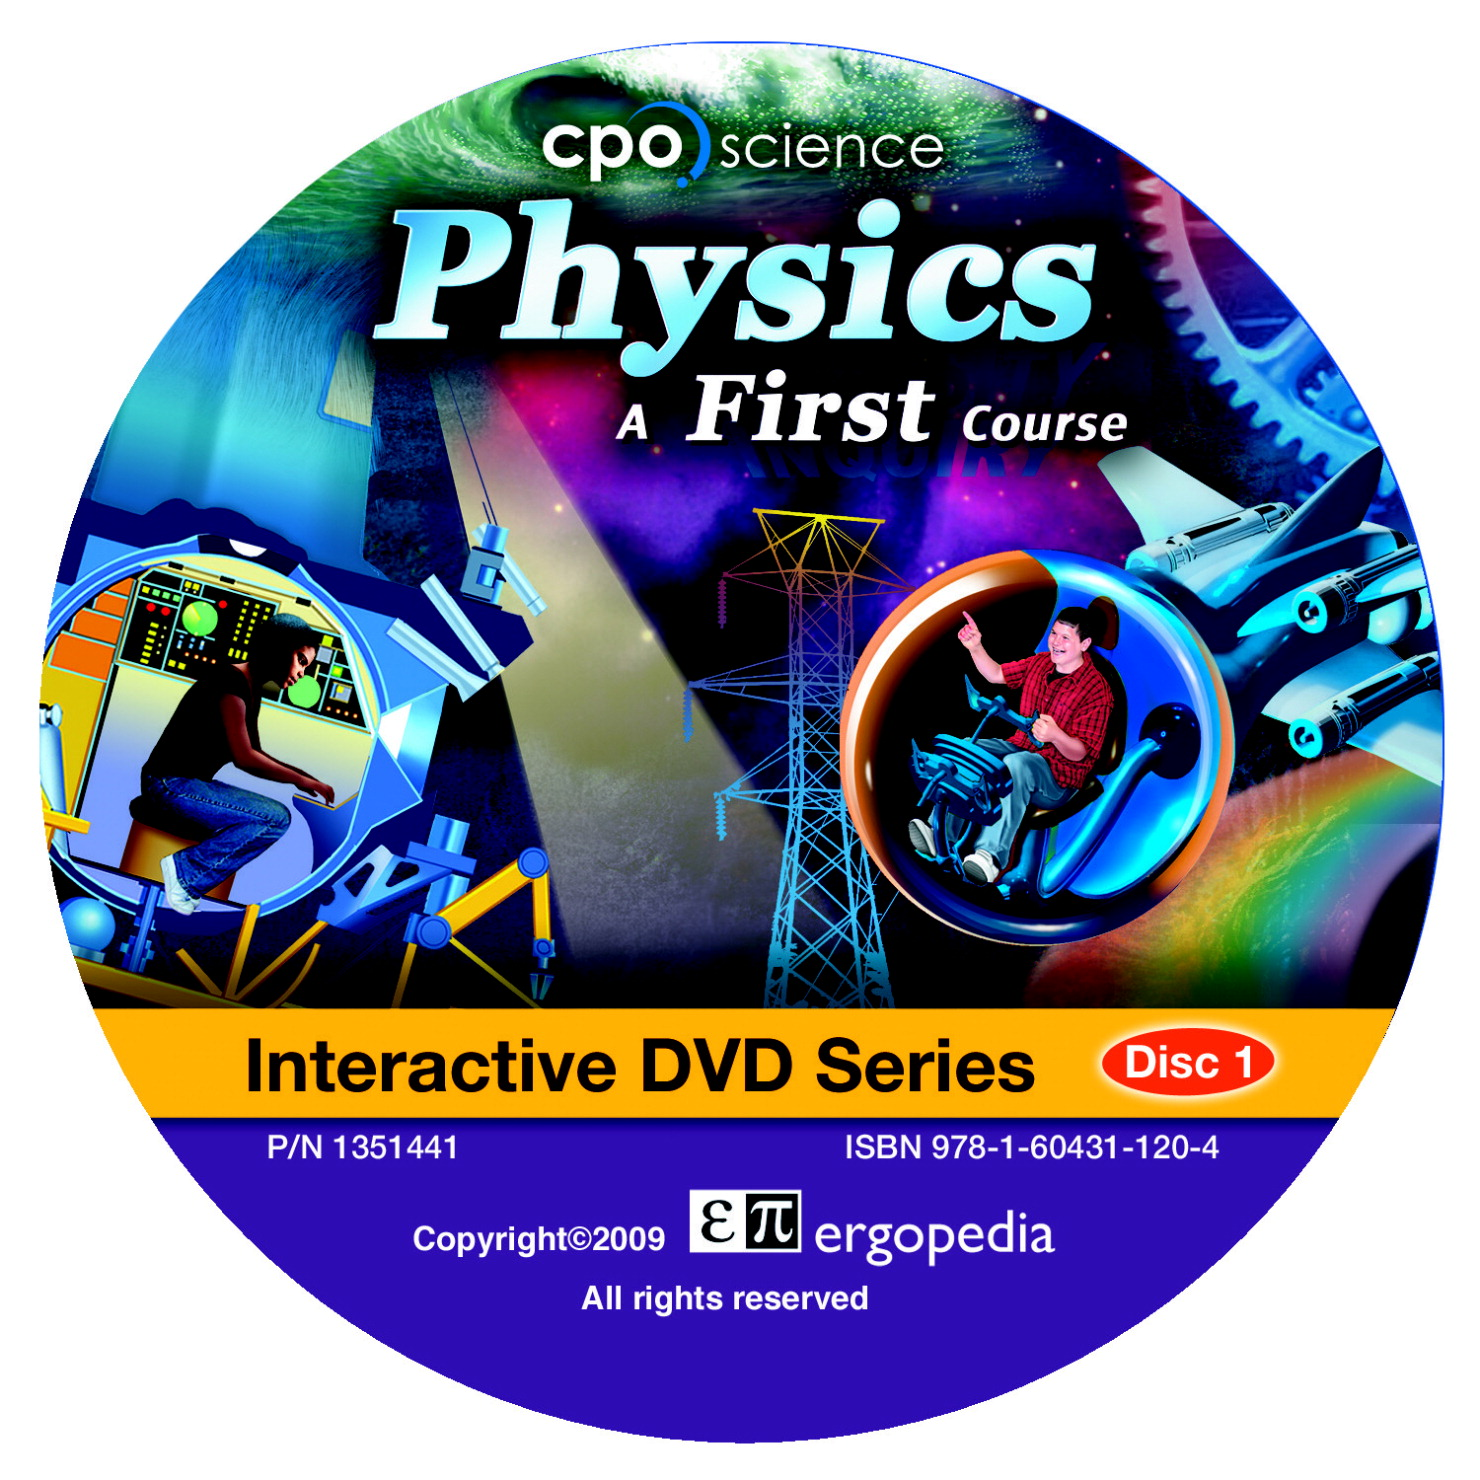 CPO Science Physics A First Course Interactive DVD Set, Set of 2